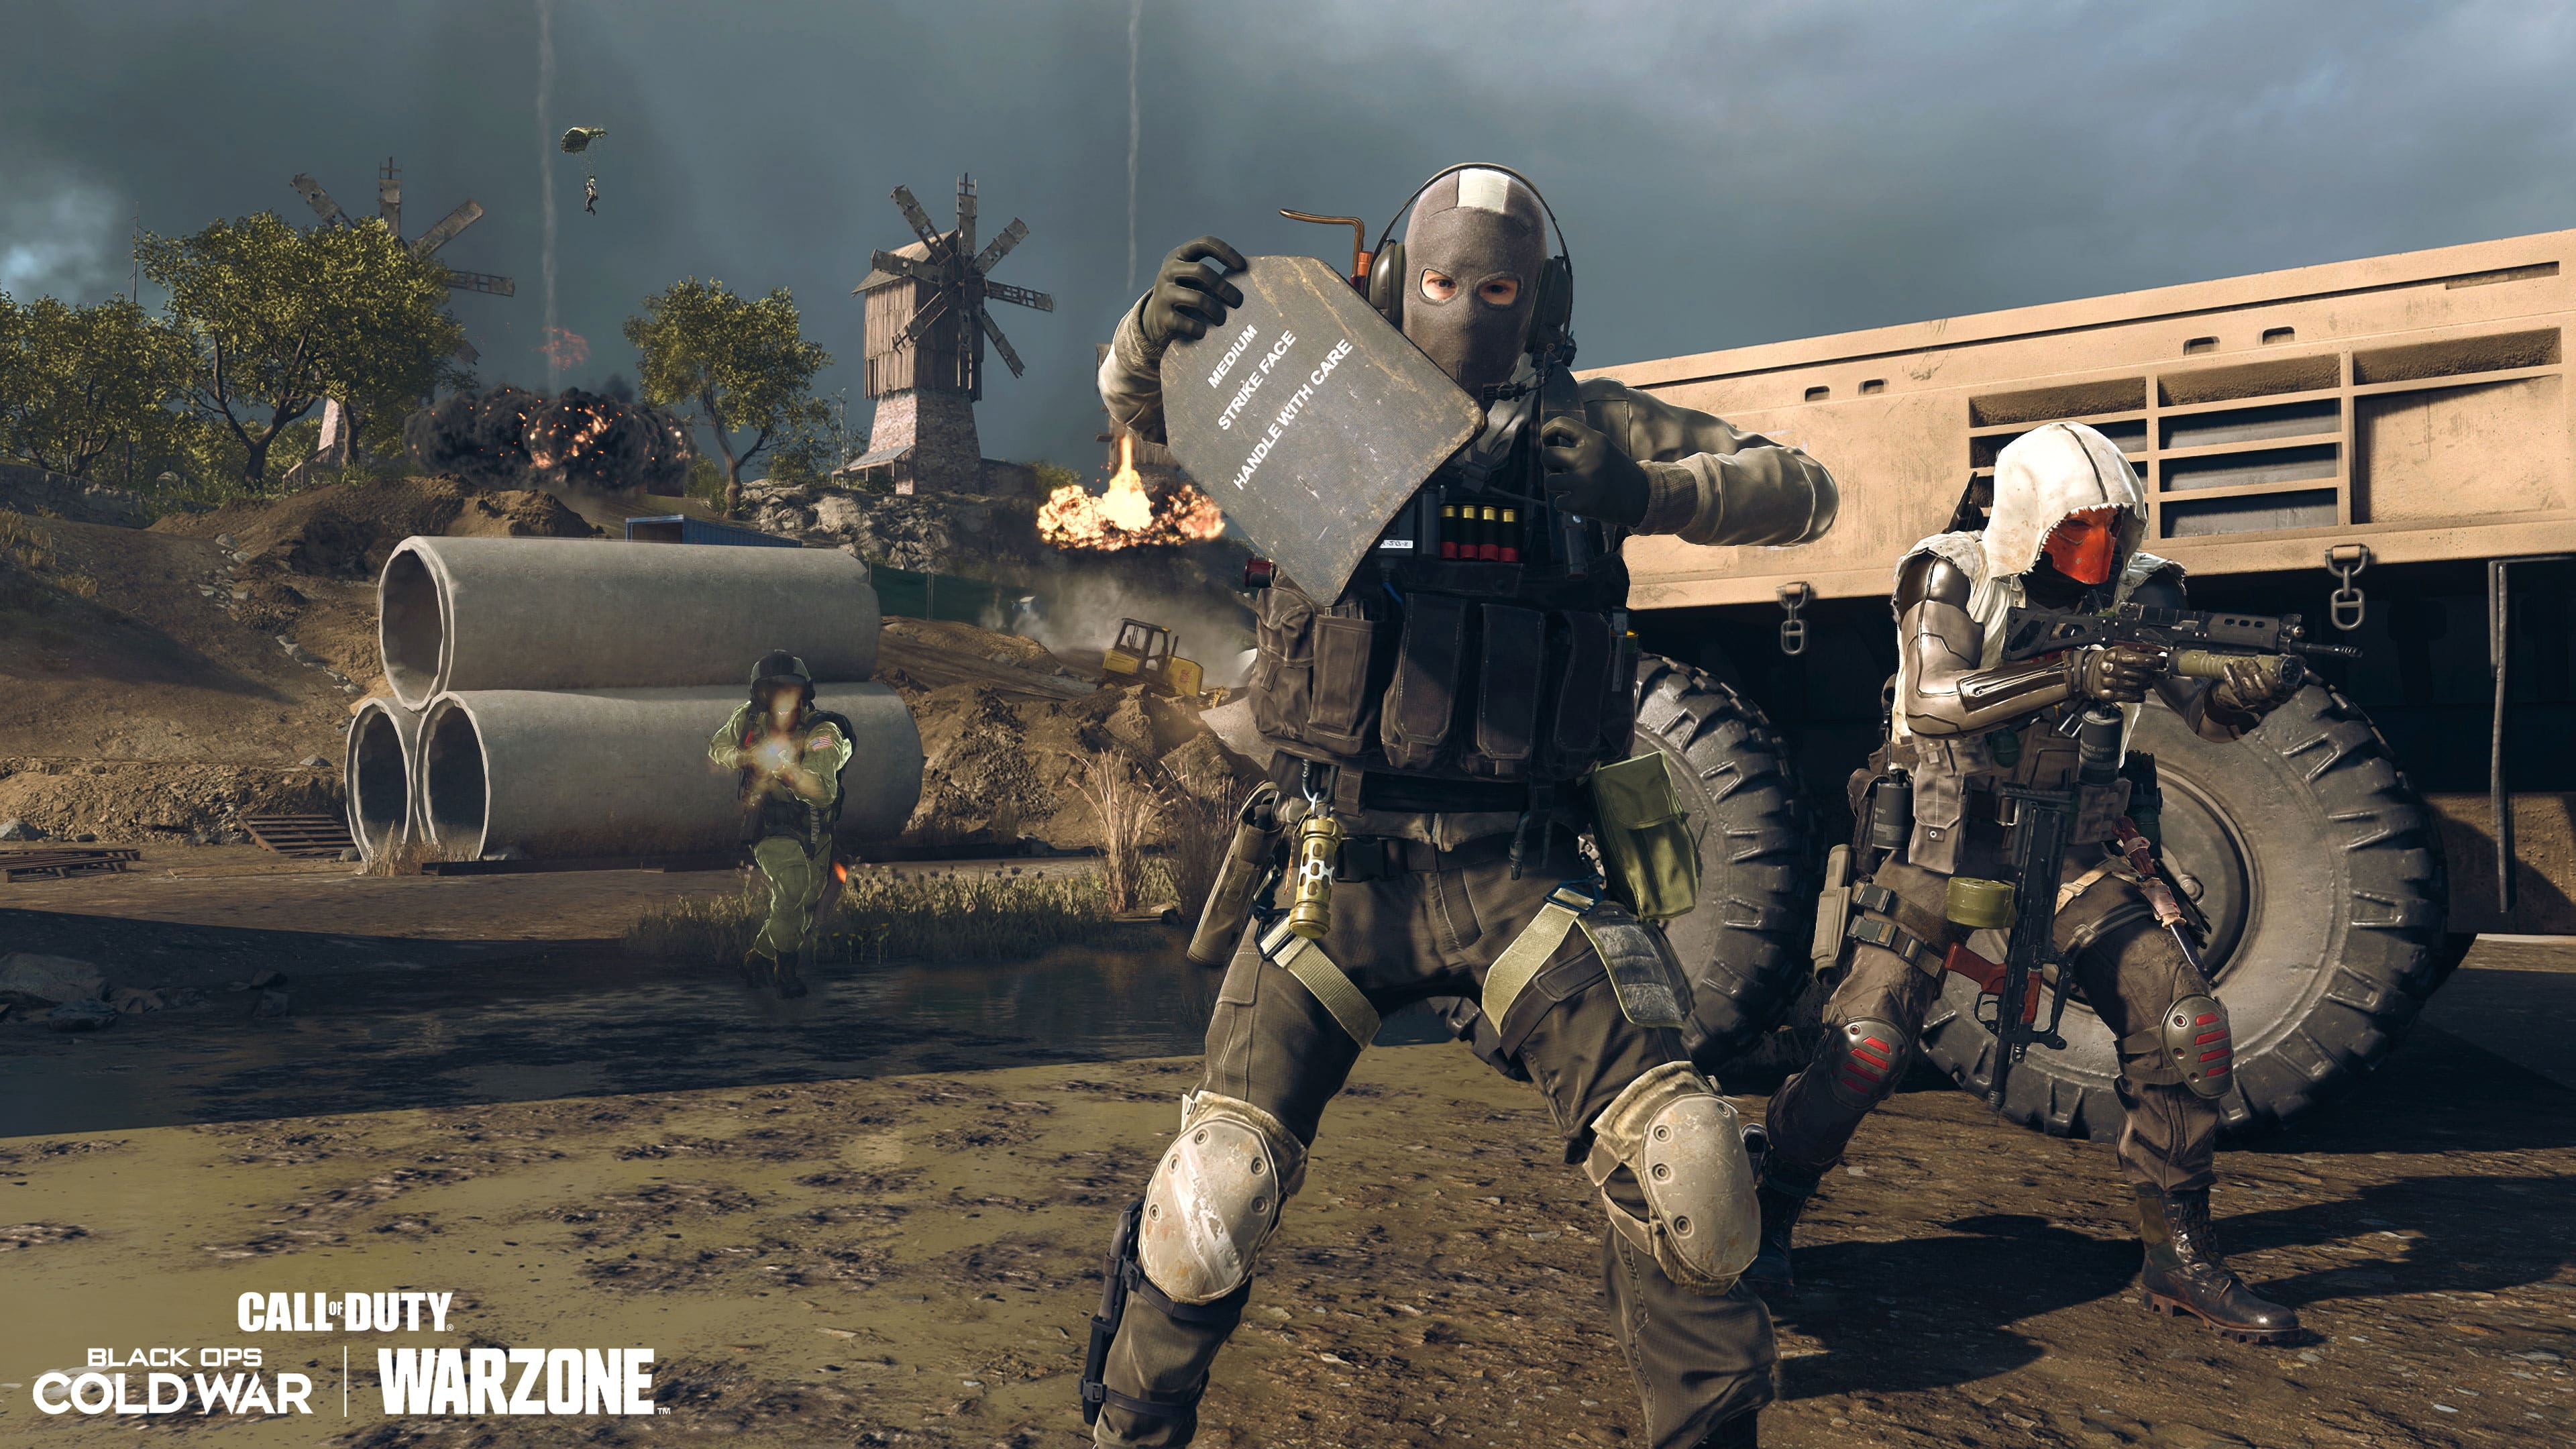 COD Warzone Playlist Update for August 25